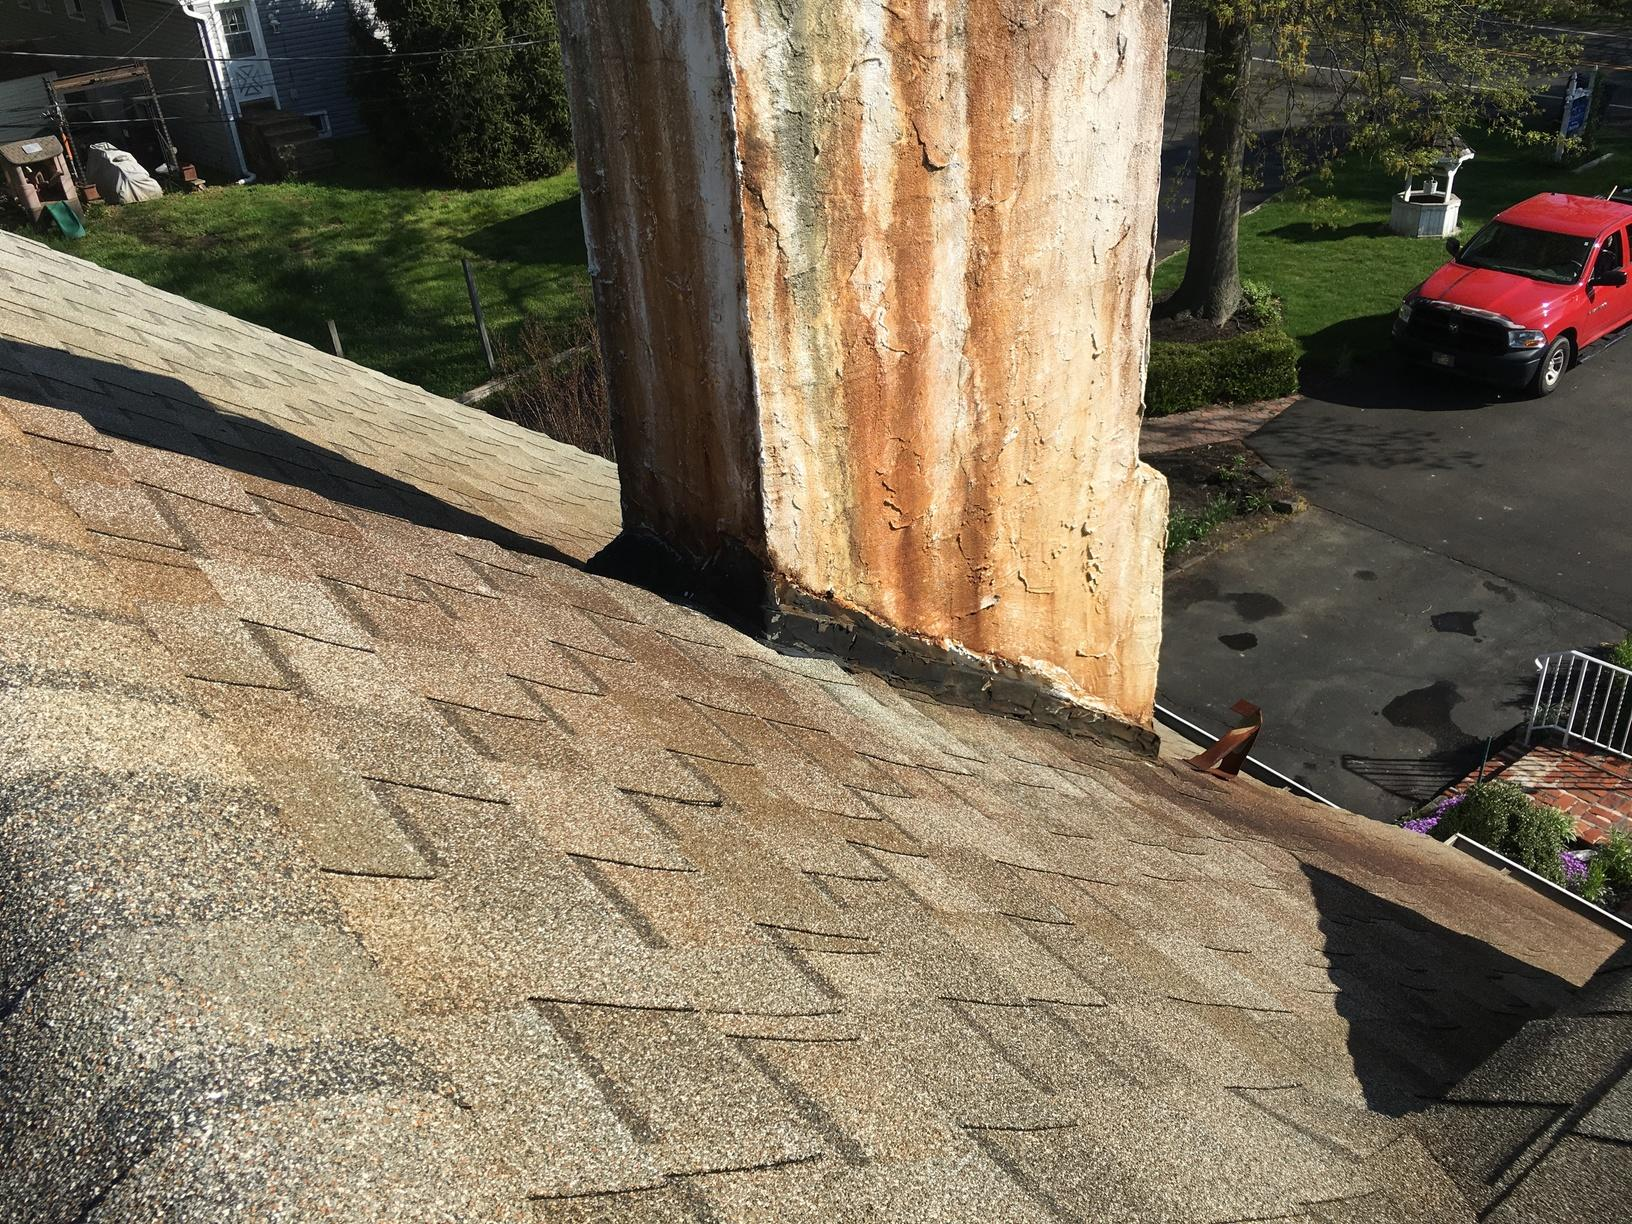 Discoloring on Shingles and Around Chimney